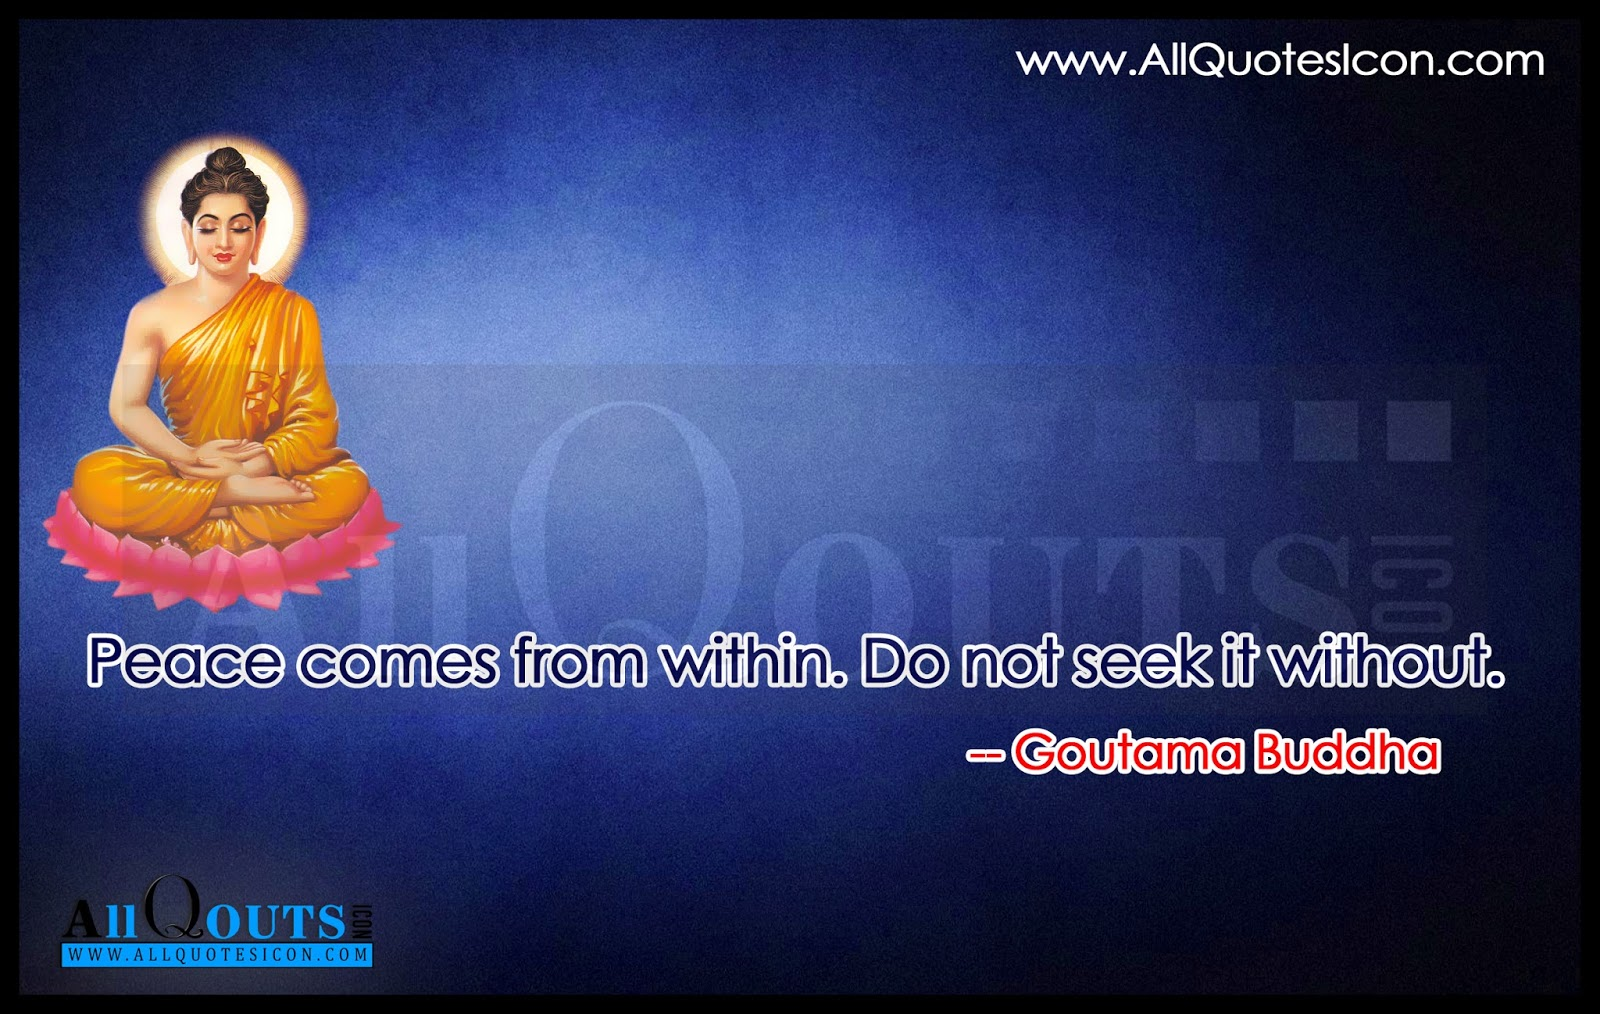 Gautama Buddha Quotes In English Hd Wallpapers Peace Comes From